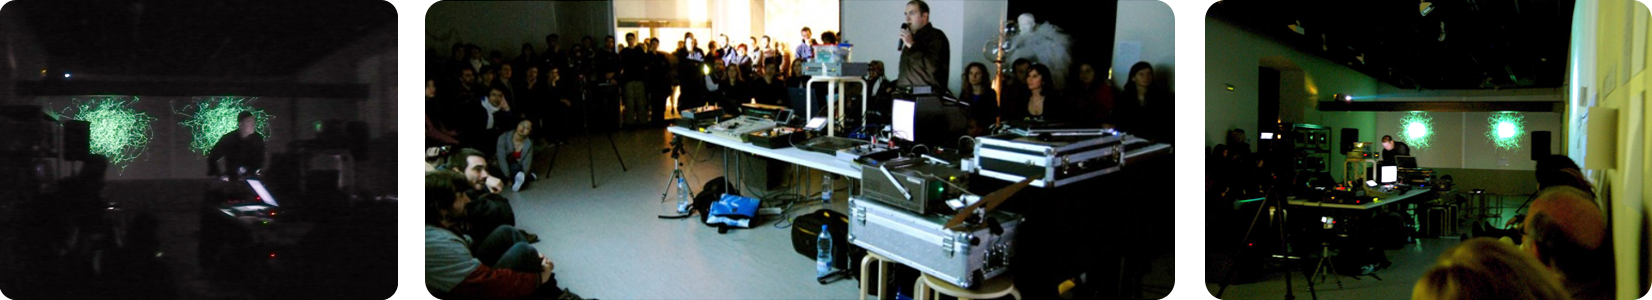 Lissajous Talk and Concert